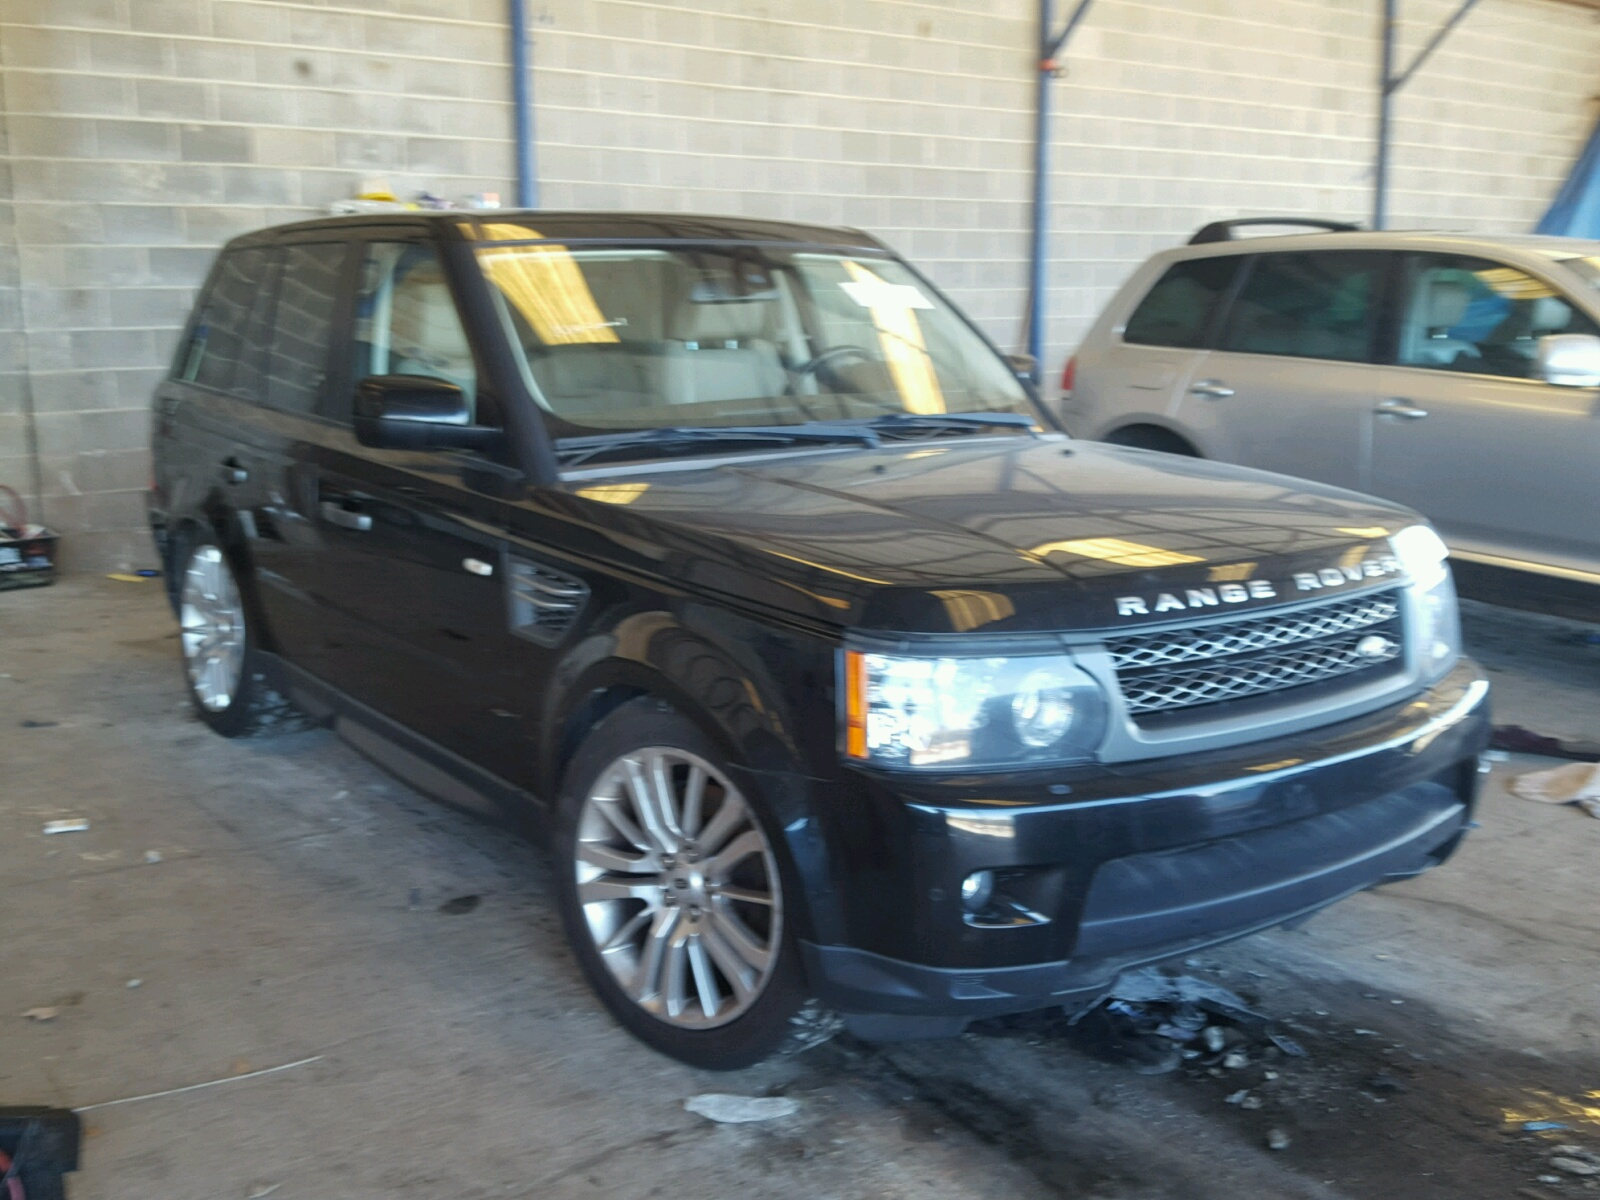 rover san landrover ca for en auto view right auctions certificate online lot diego salvage carfinder land blue on in copart hse sale